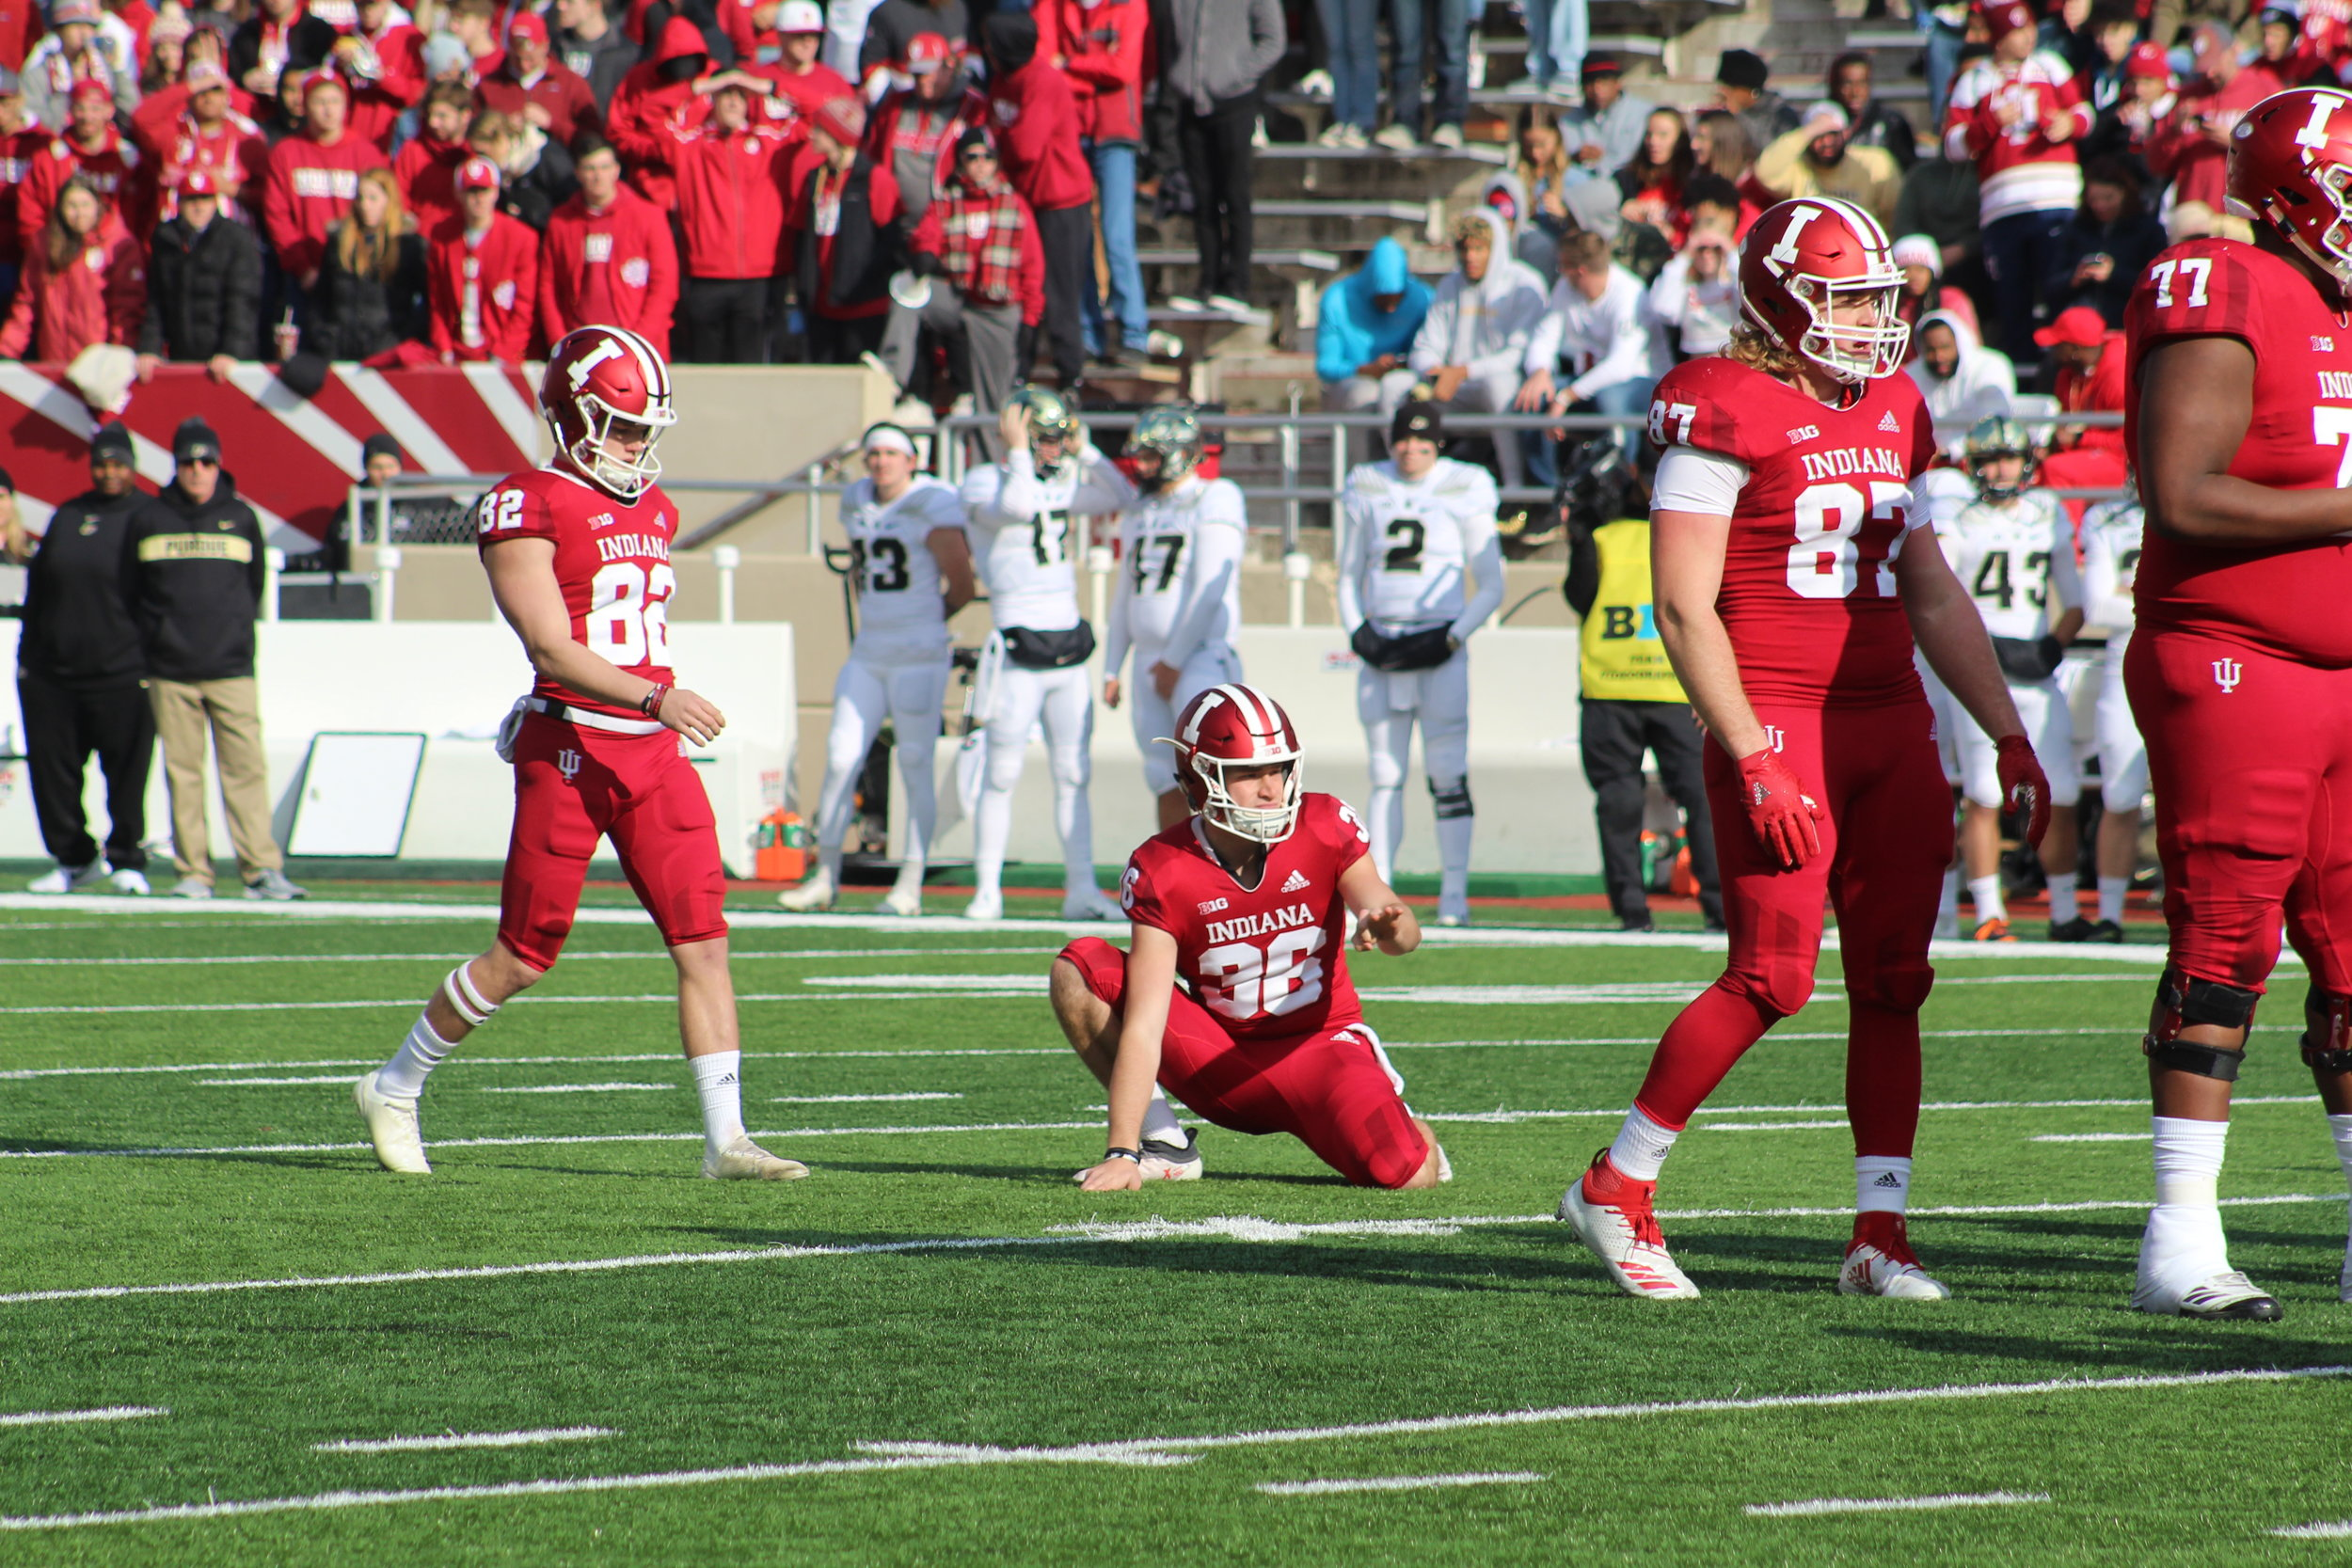 Logan Justus lines up for a field goal  Image: Sammy Jacobs Hoosier Huddle